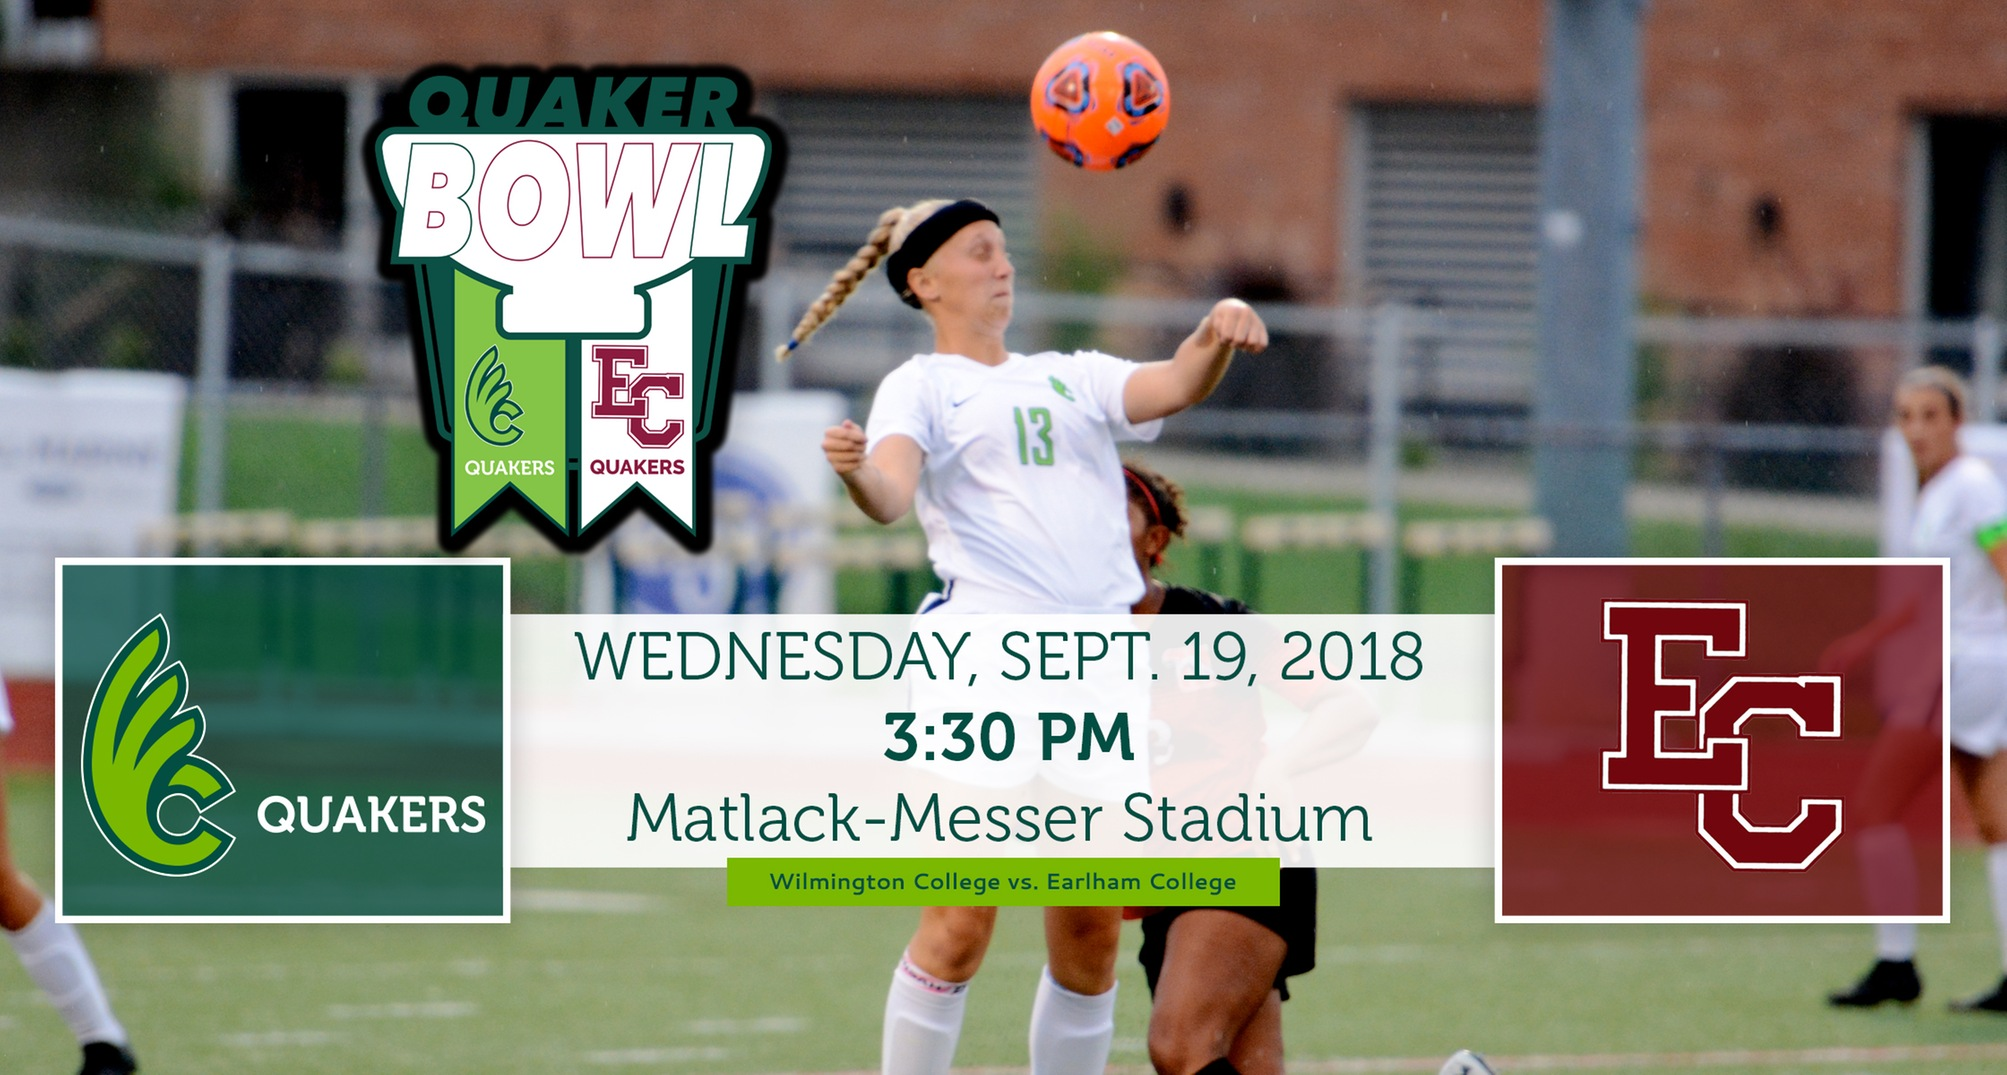 Women's Soccer Heads to Earlham for Quaker Bowl Rivalry Wednesday